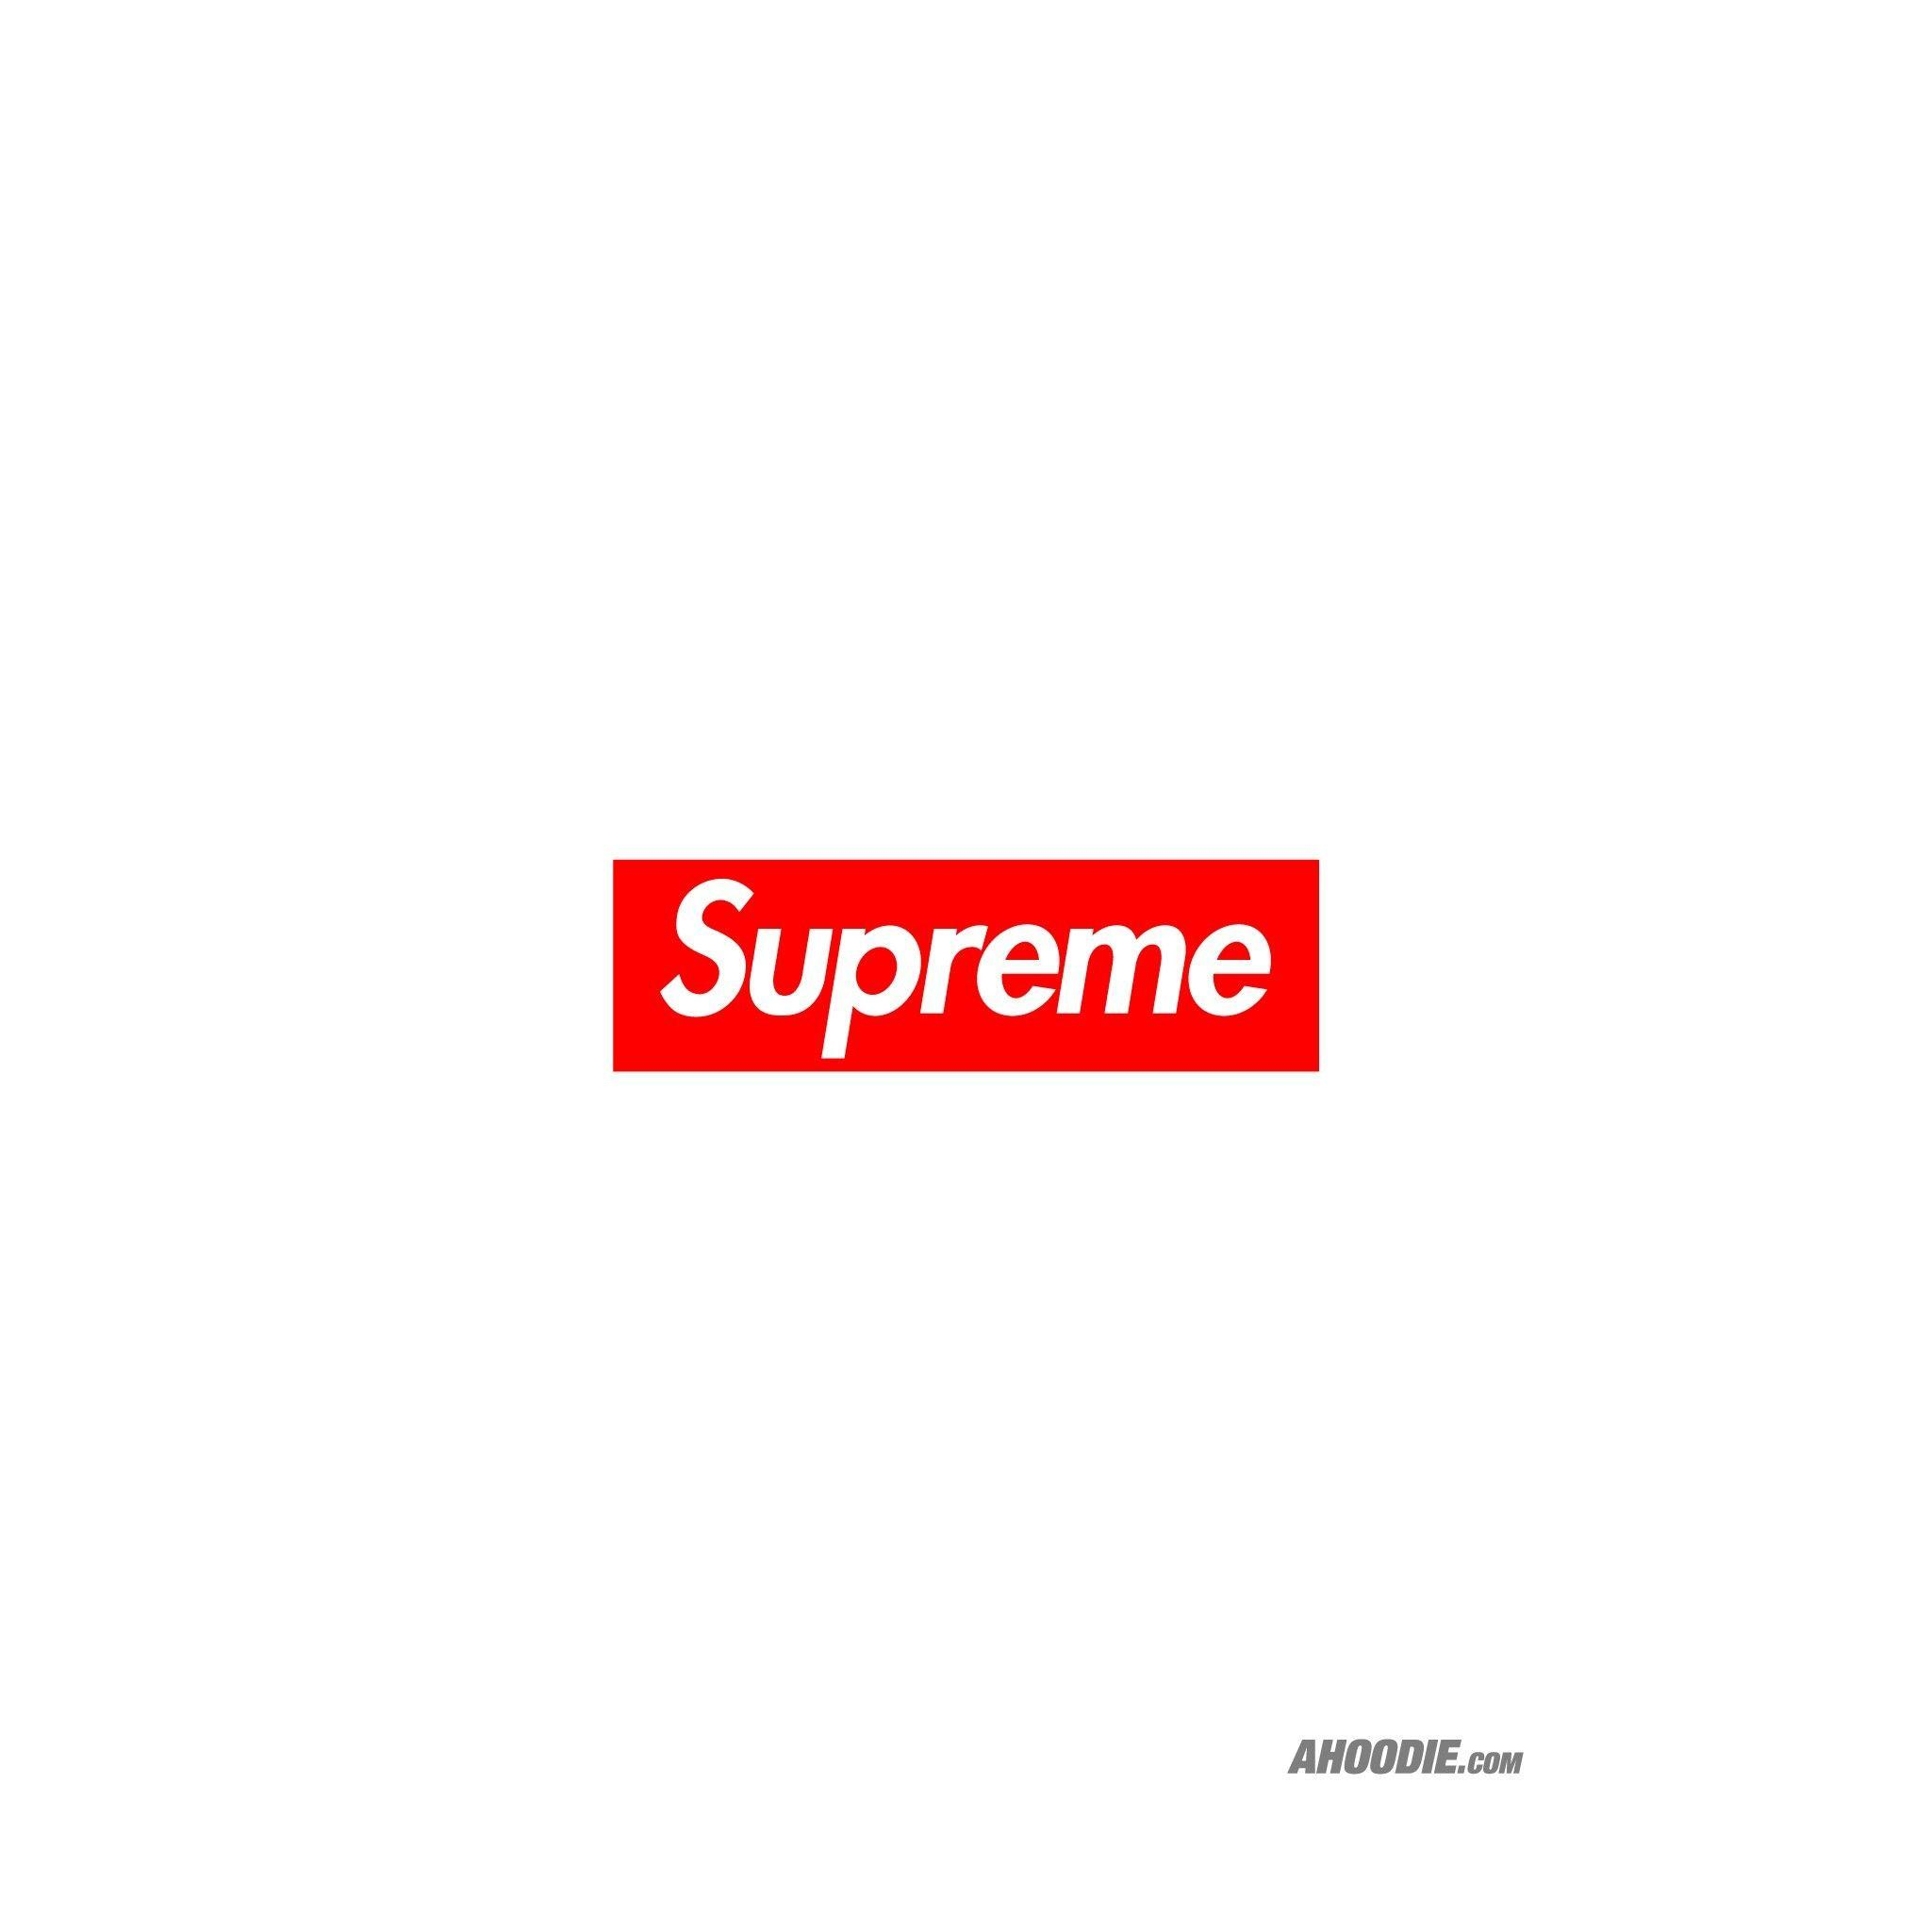 Supreme And Gucci Wallpapers - Wallpaper Cave